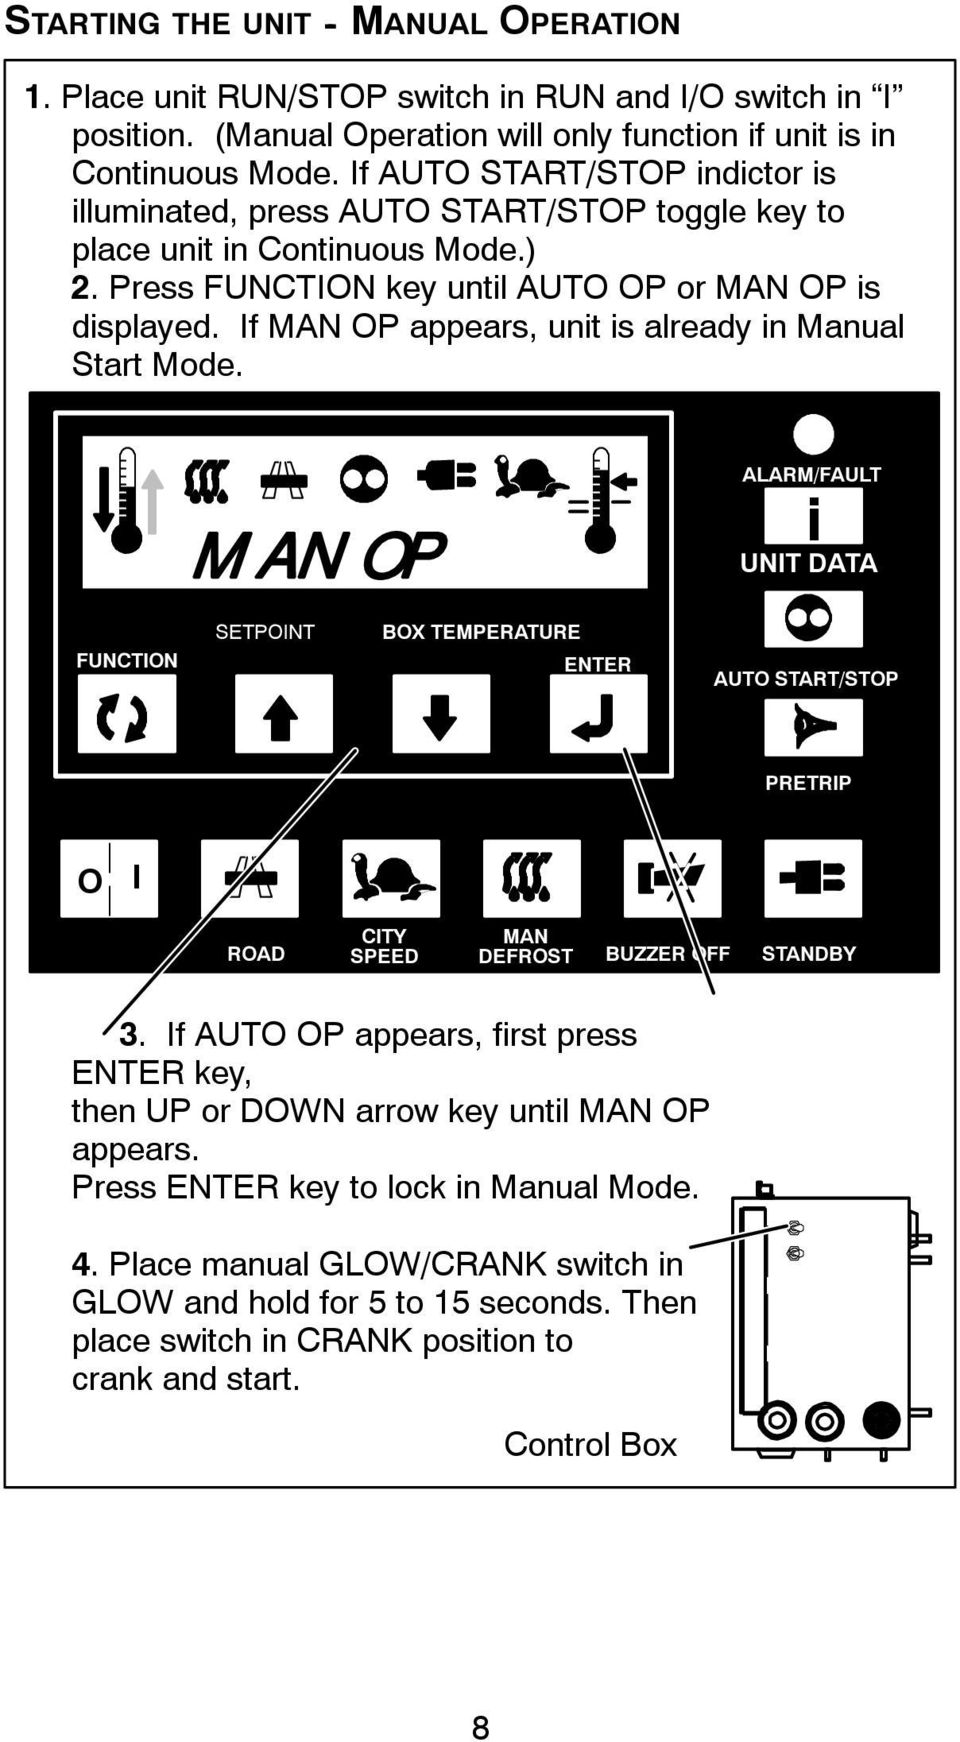 operator s manual supra 550 650 750 850 950 truck rh docplayer net Carrier Transicold Controller Pics Carrier Transicold Parts